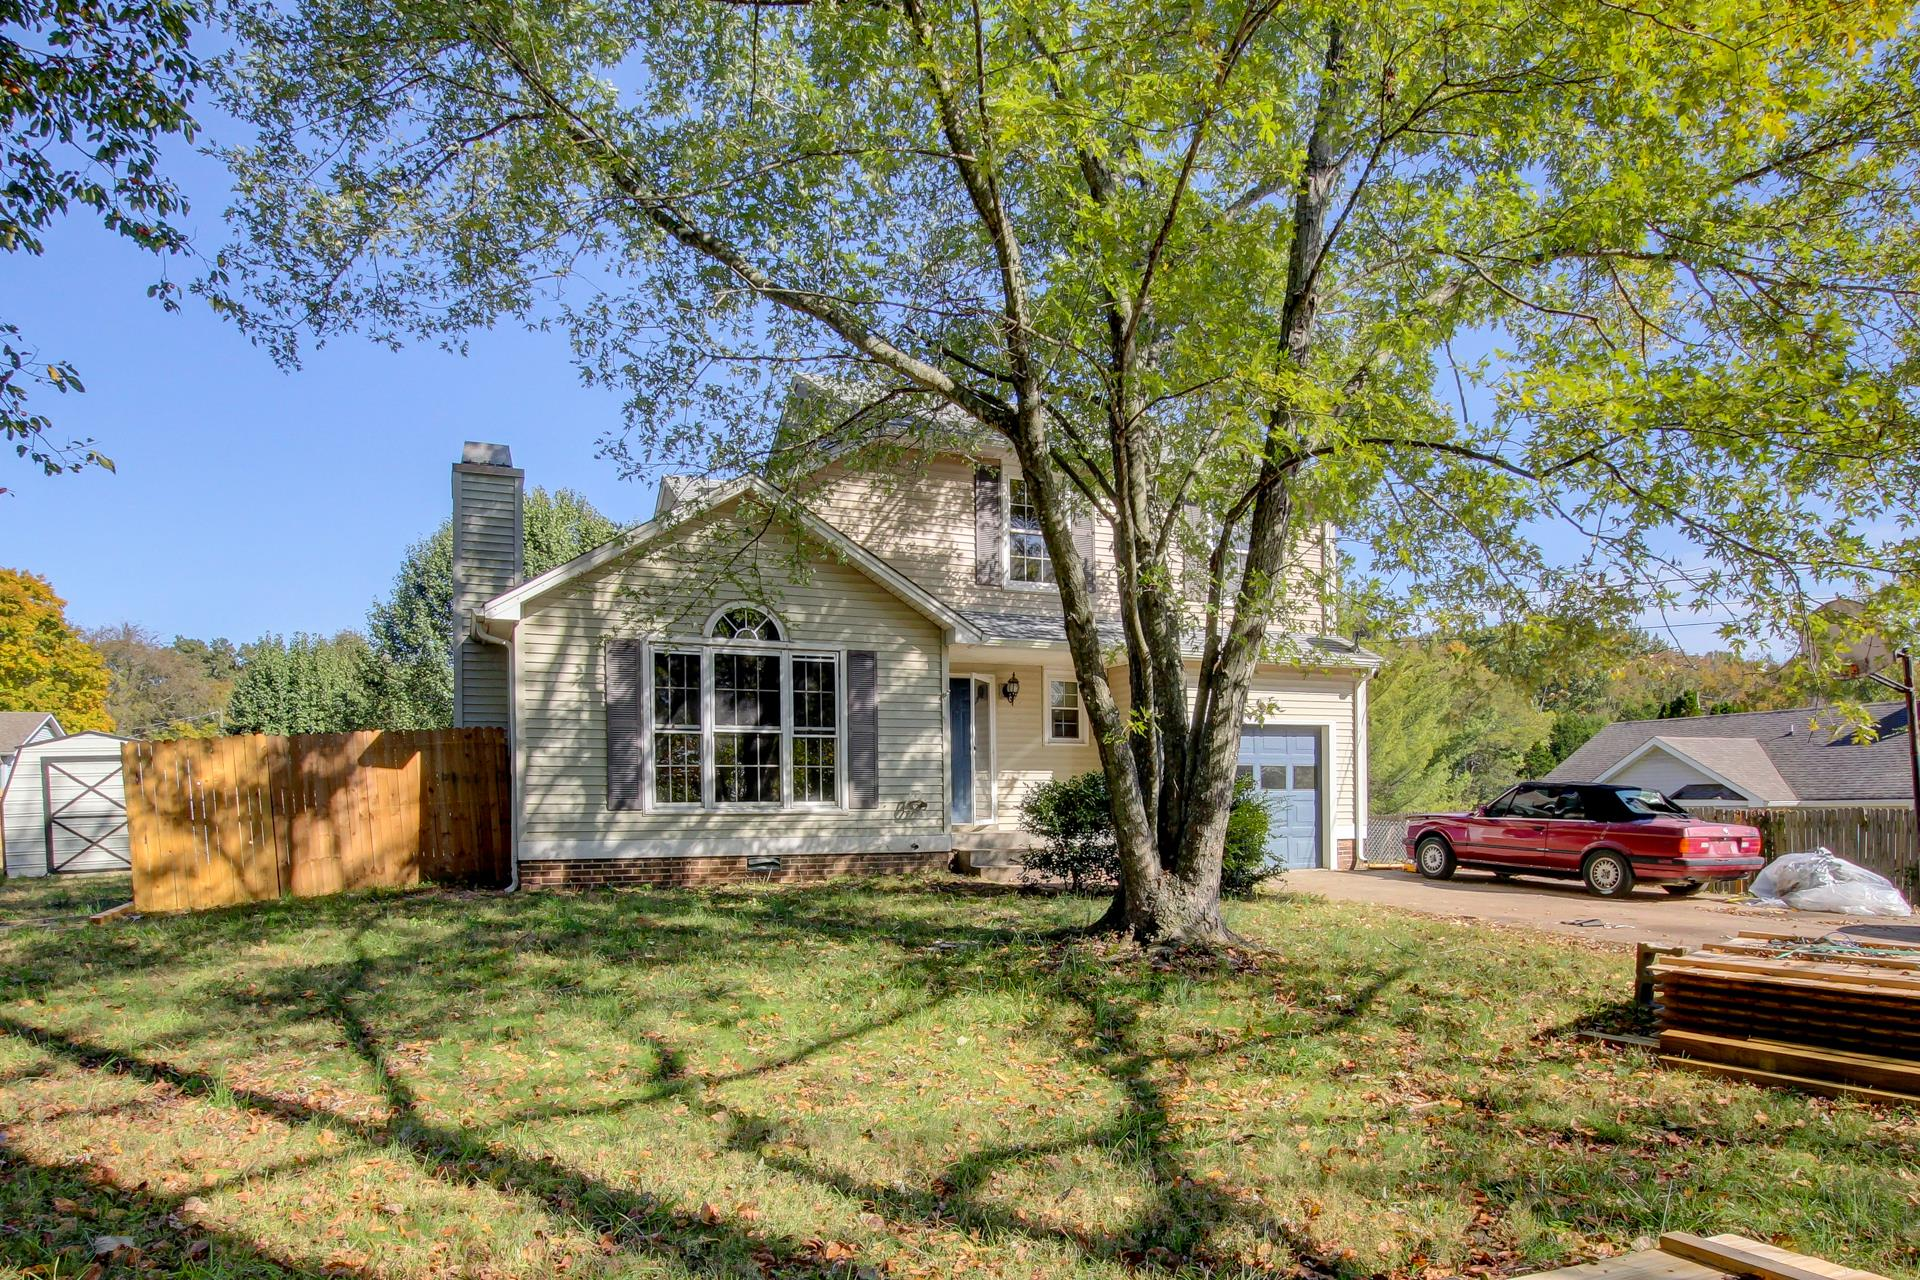 468 Bluff Dr, Clarksville in Montgomery County County, TN 37043 Home for Sale